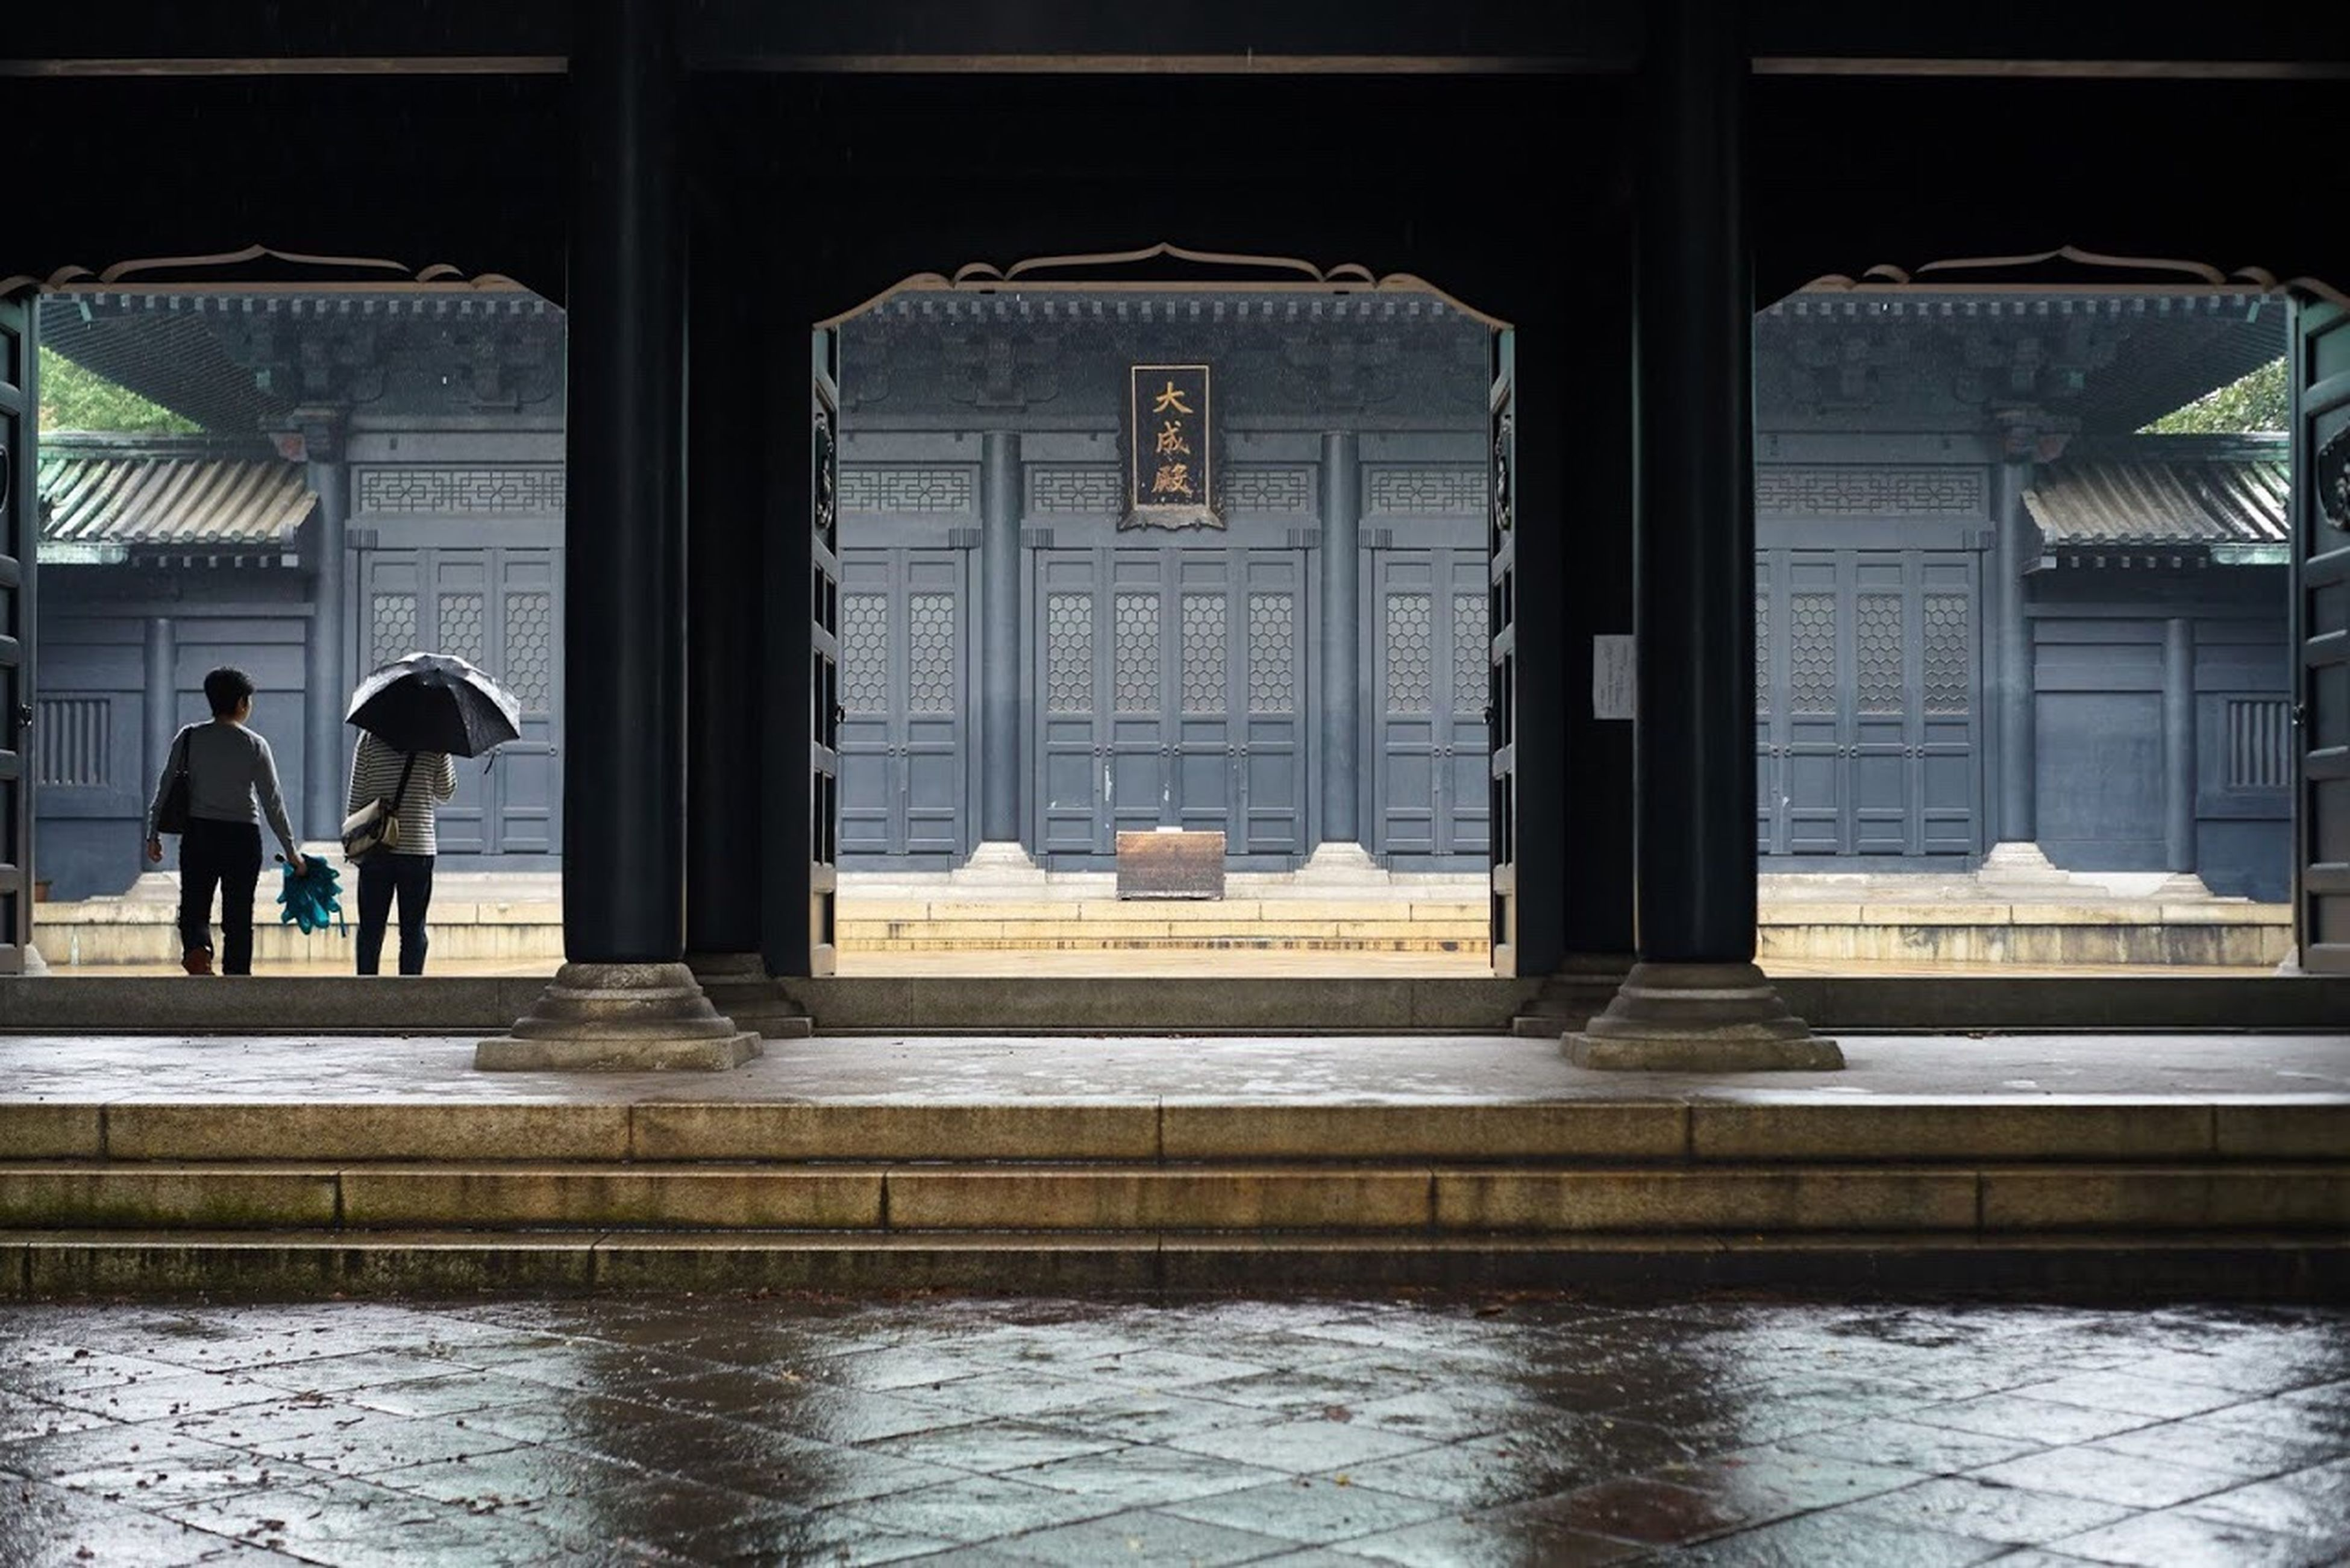 Indoors  Architecture Built Structure Religion Place Of Worship Rear View Spirituality Arch Person Day Arched Tourism Famous Place Façade Rainy Days Outdoors Gate Yushimaseido EyeEm Best Shots EyeEm Gallery Architecture